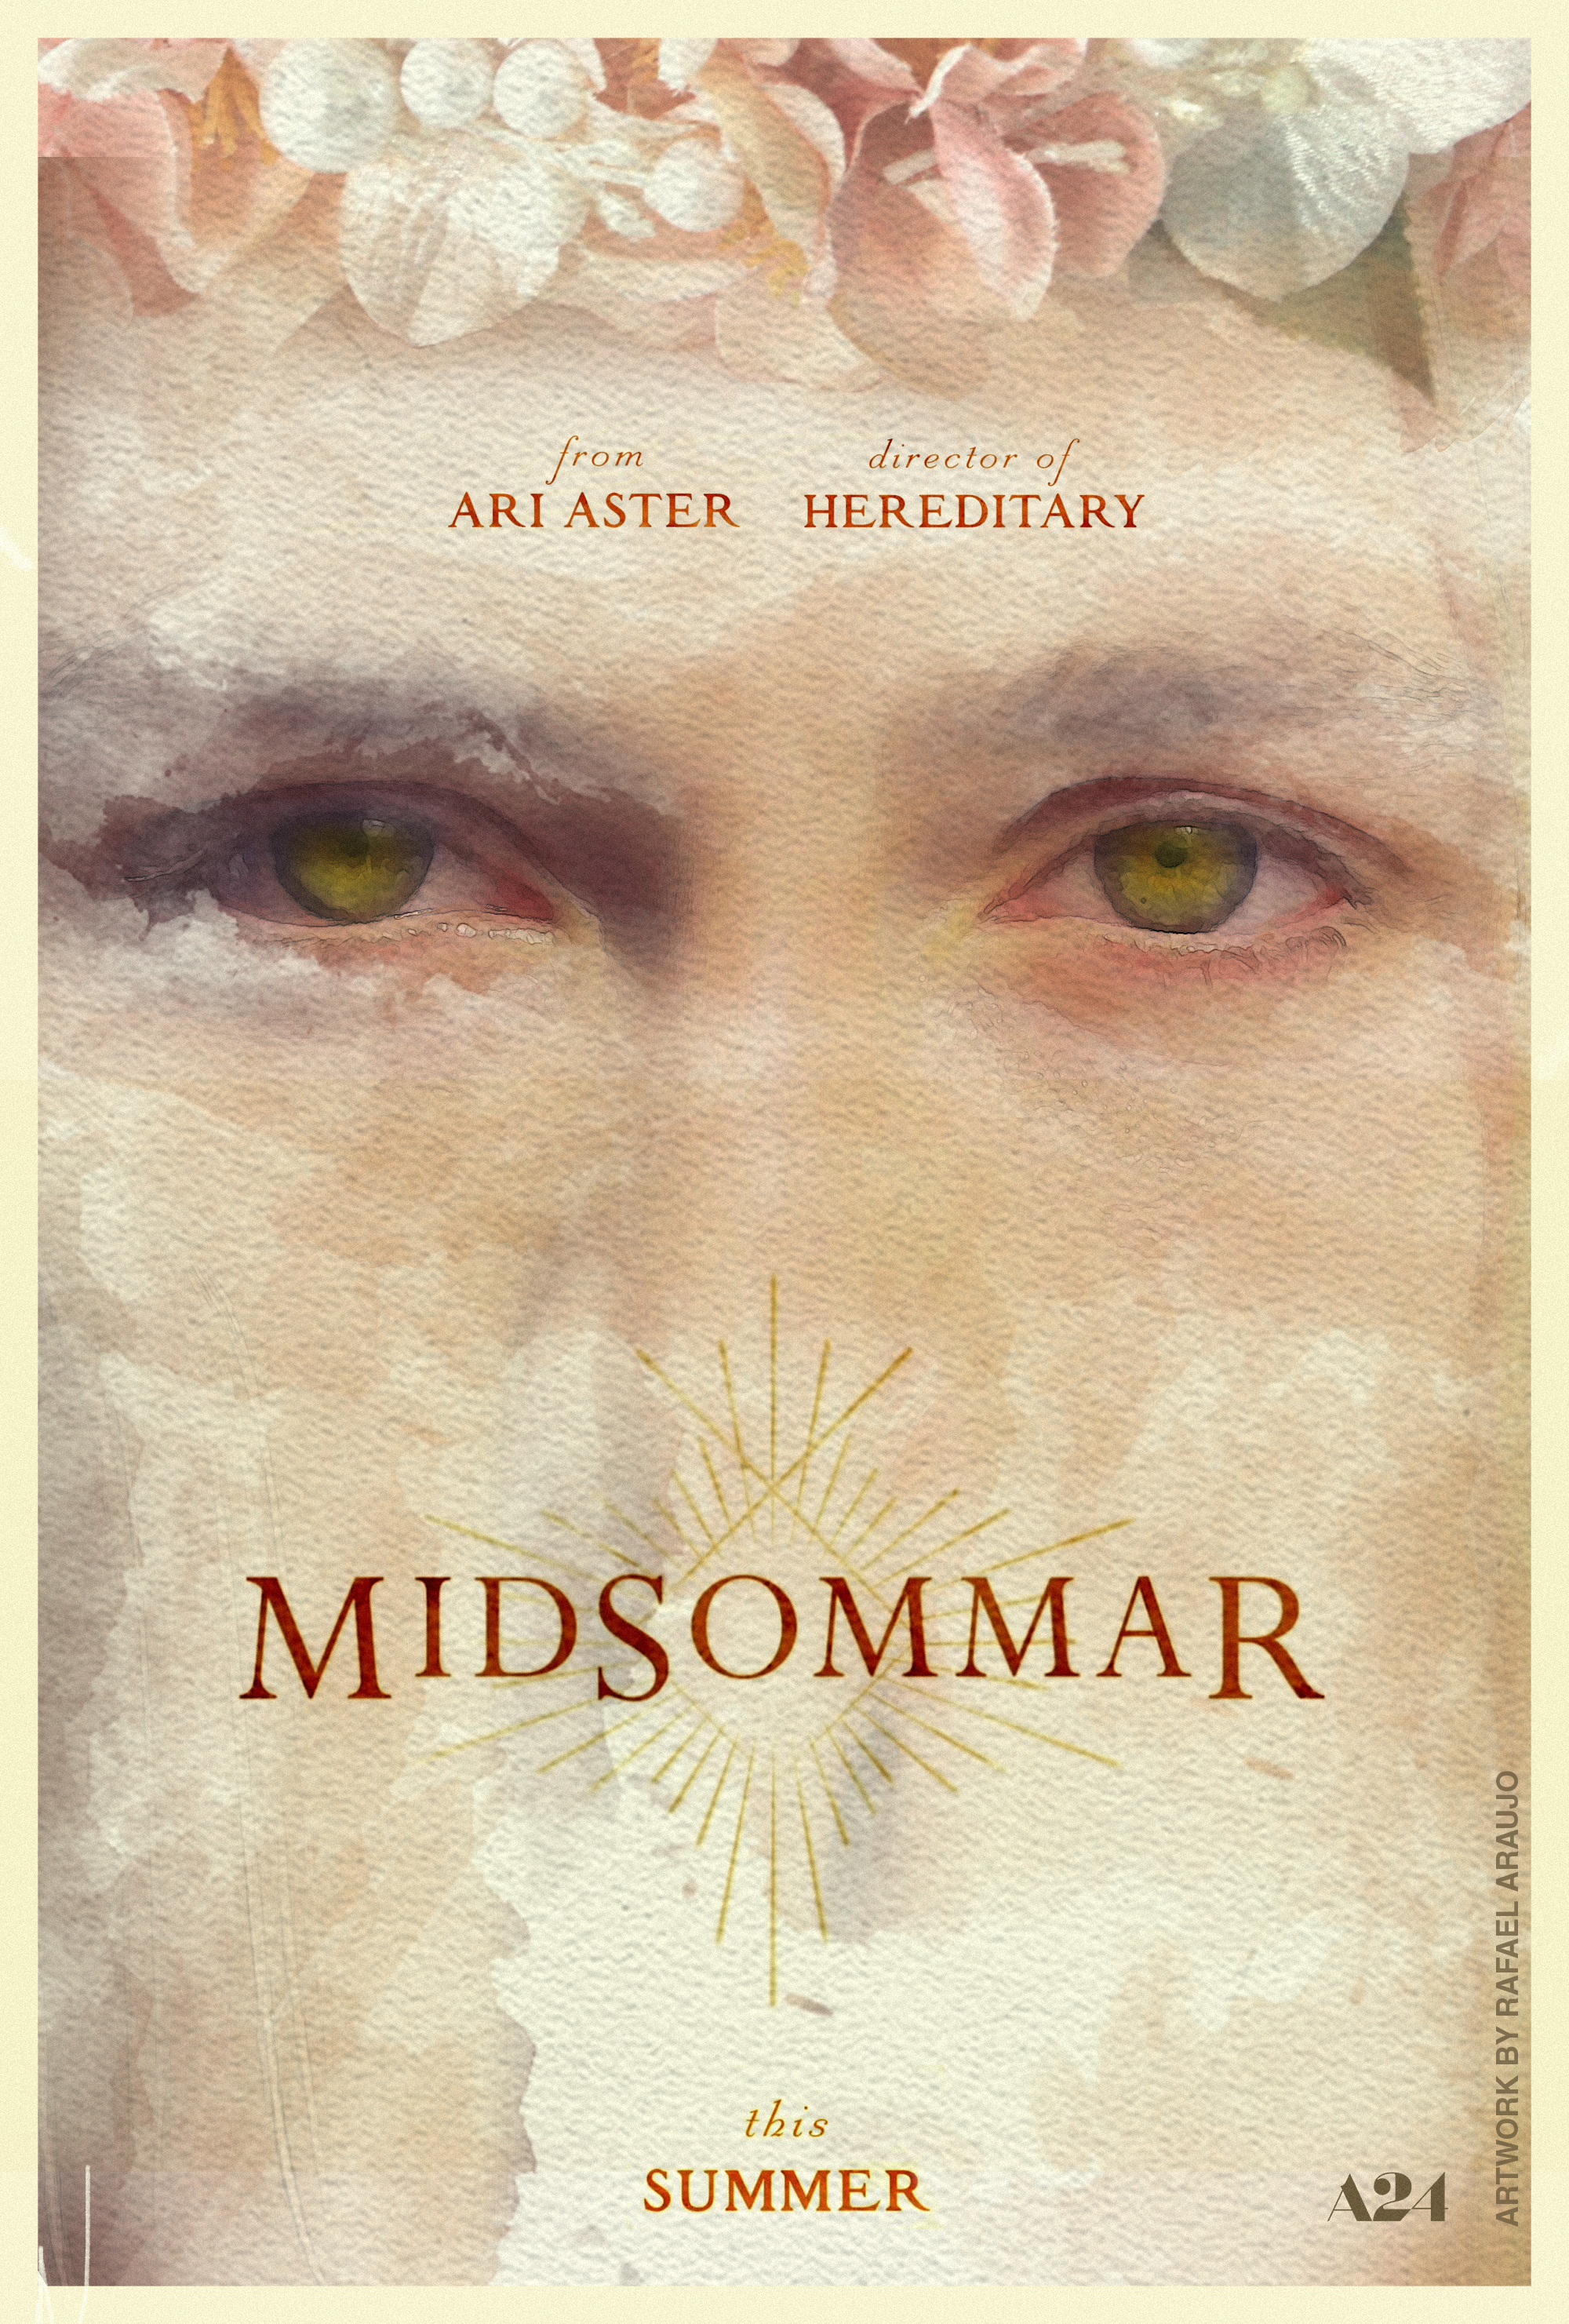 midsommar 2019 ari aster poster 2 by amazingzuckonit